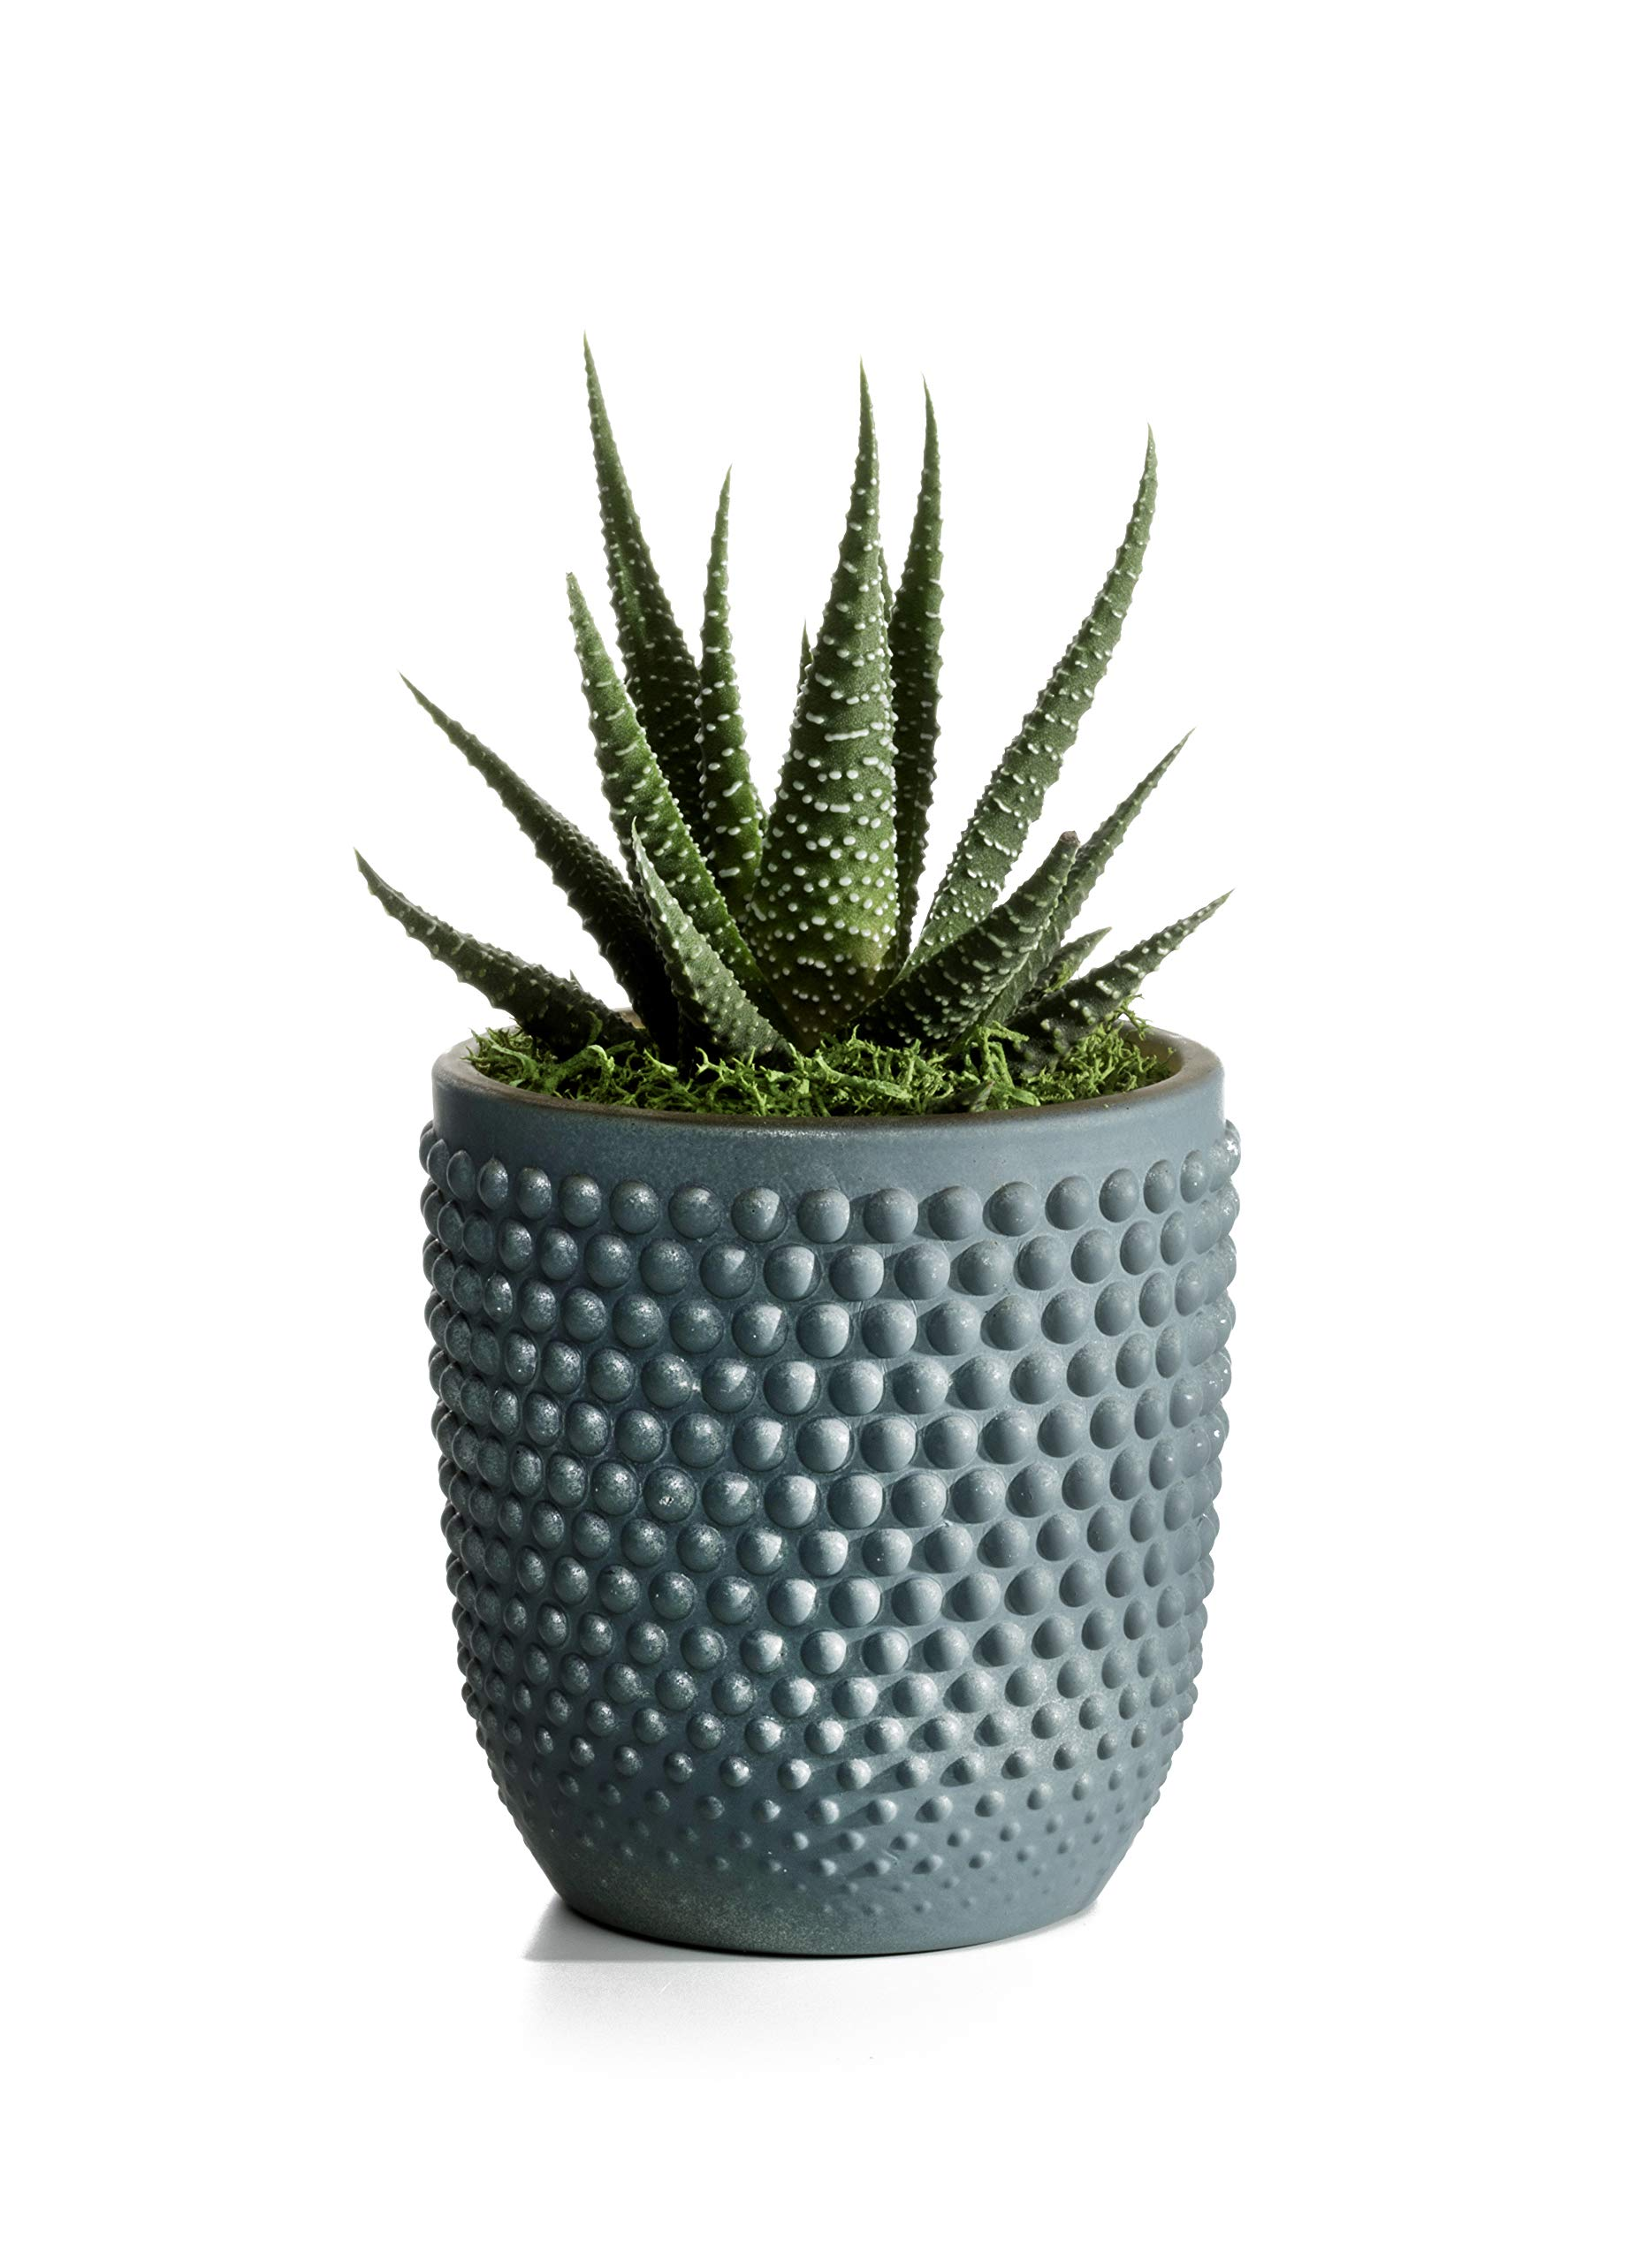 Live Succulents in Blue, Teal, and Grey Ceramic Containers Set of 3, From Hallmark Flowers by Hallmark Flowers (Image #4)